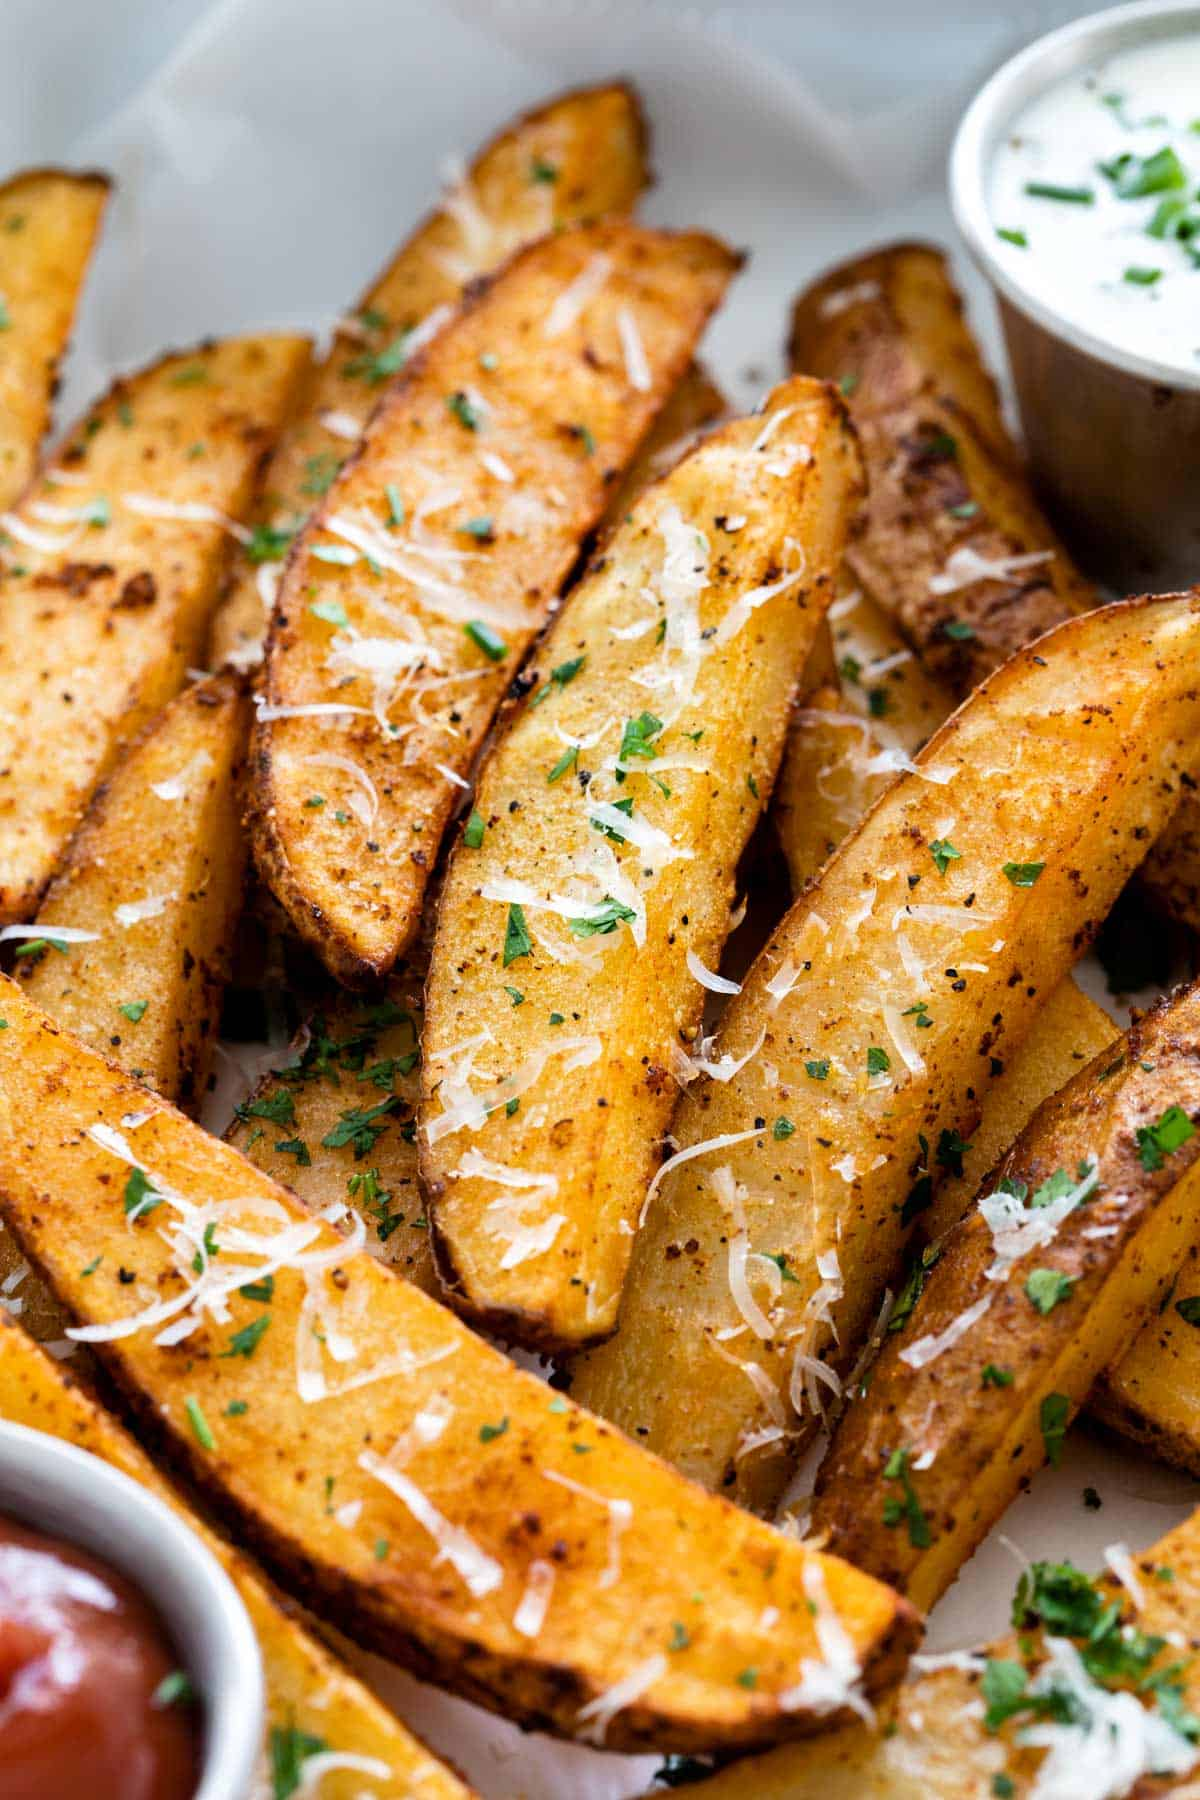 Baked Potato Wedges with Dipping Sauce